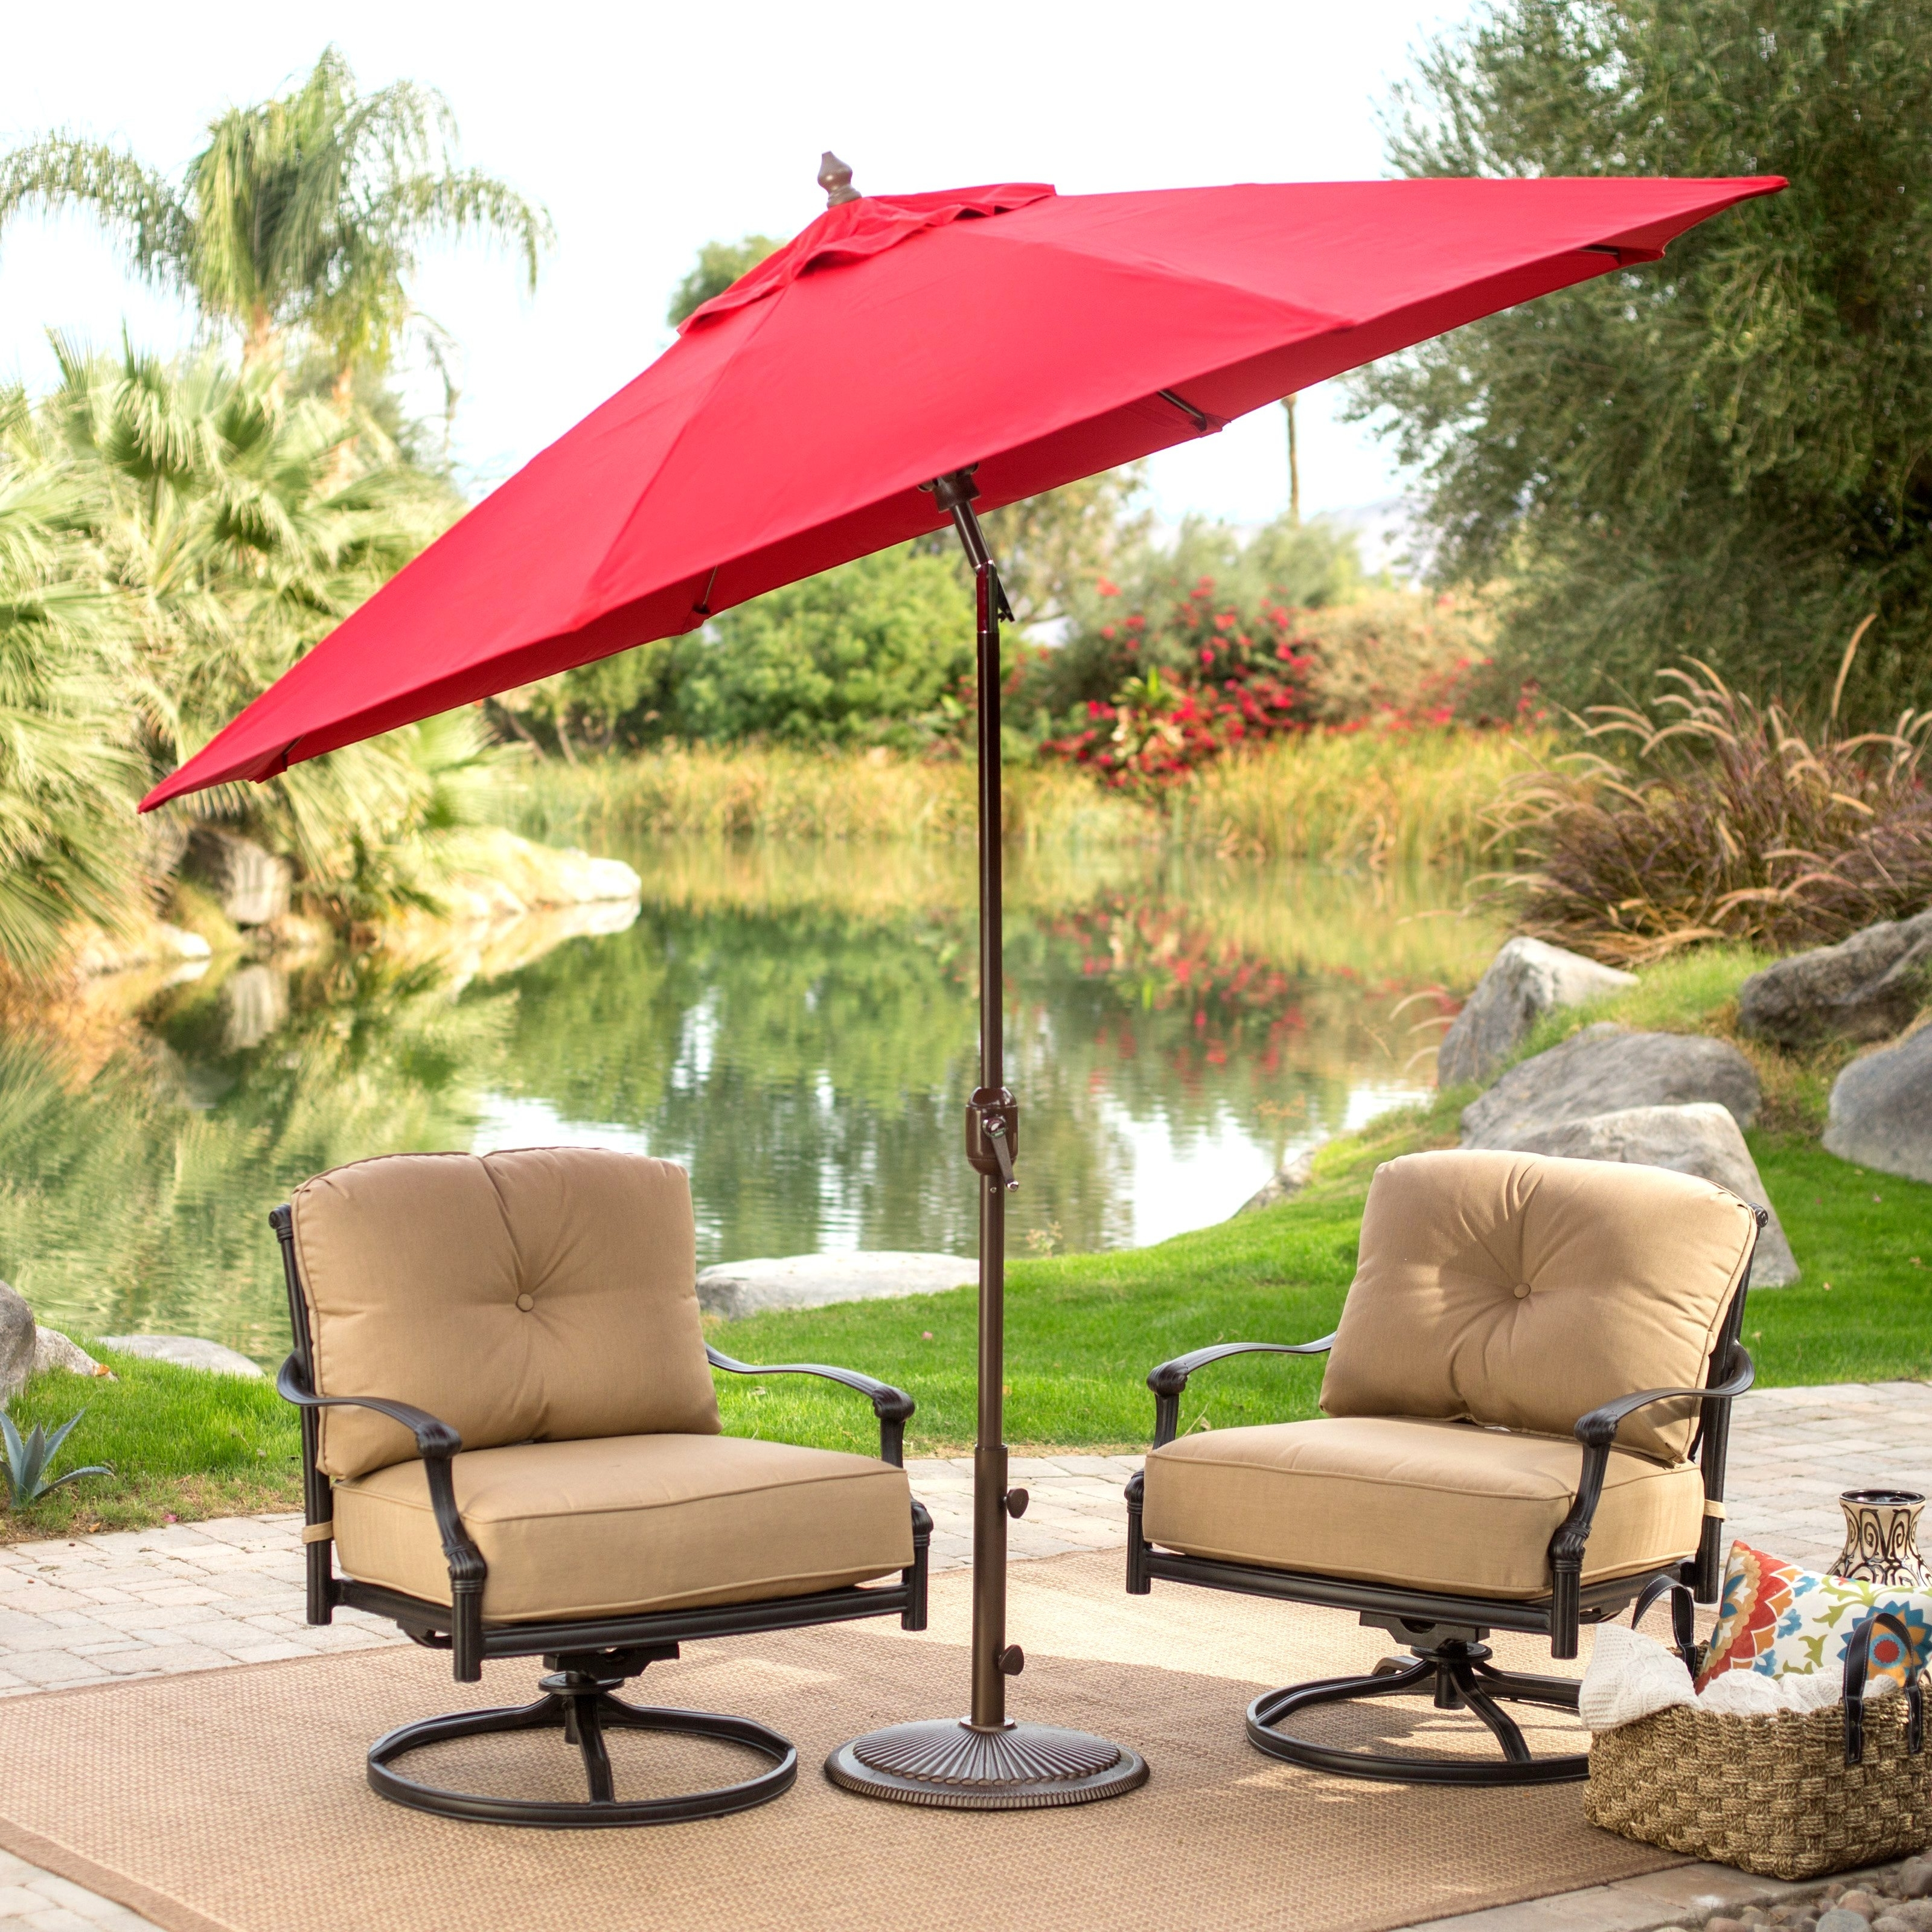 Latest Vinyl Patio Umbrellas Intended For 25 Fresh Patio Umbrella Free Standing (View 5 of 20)